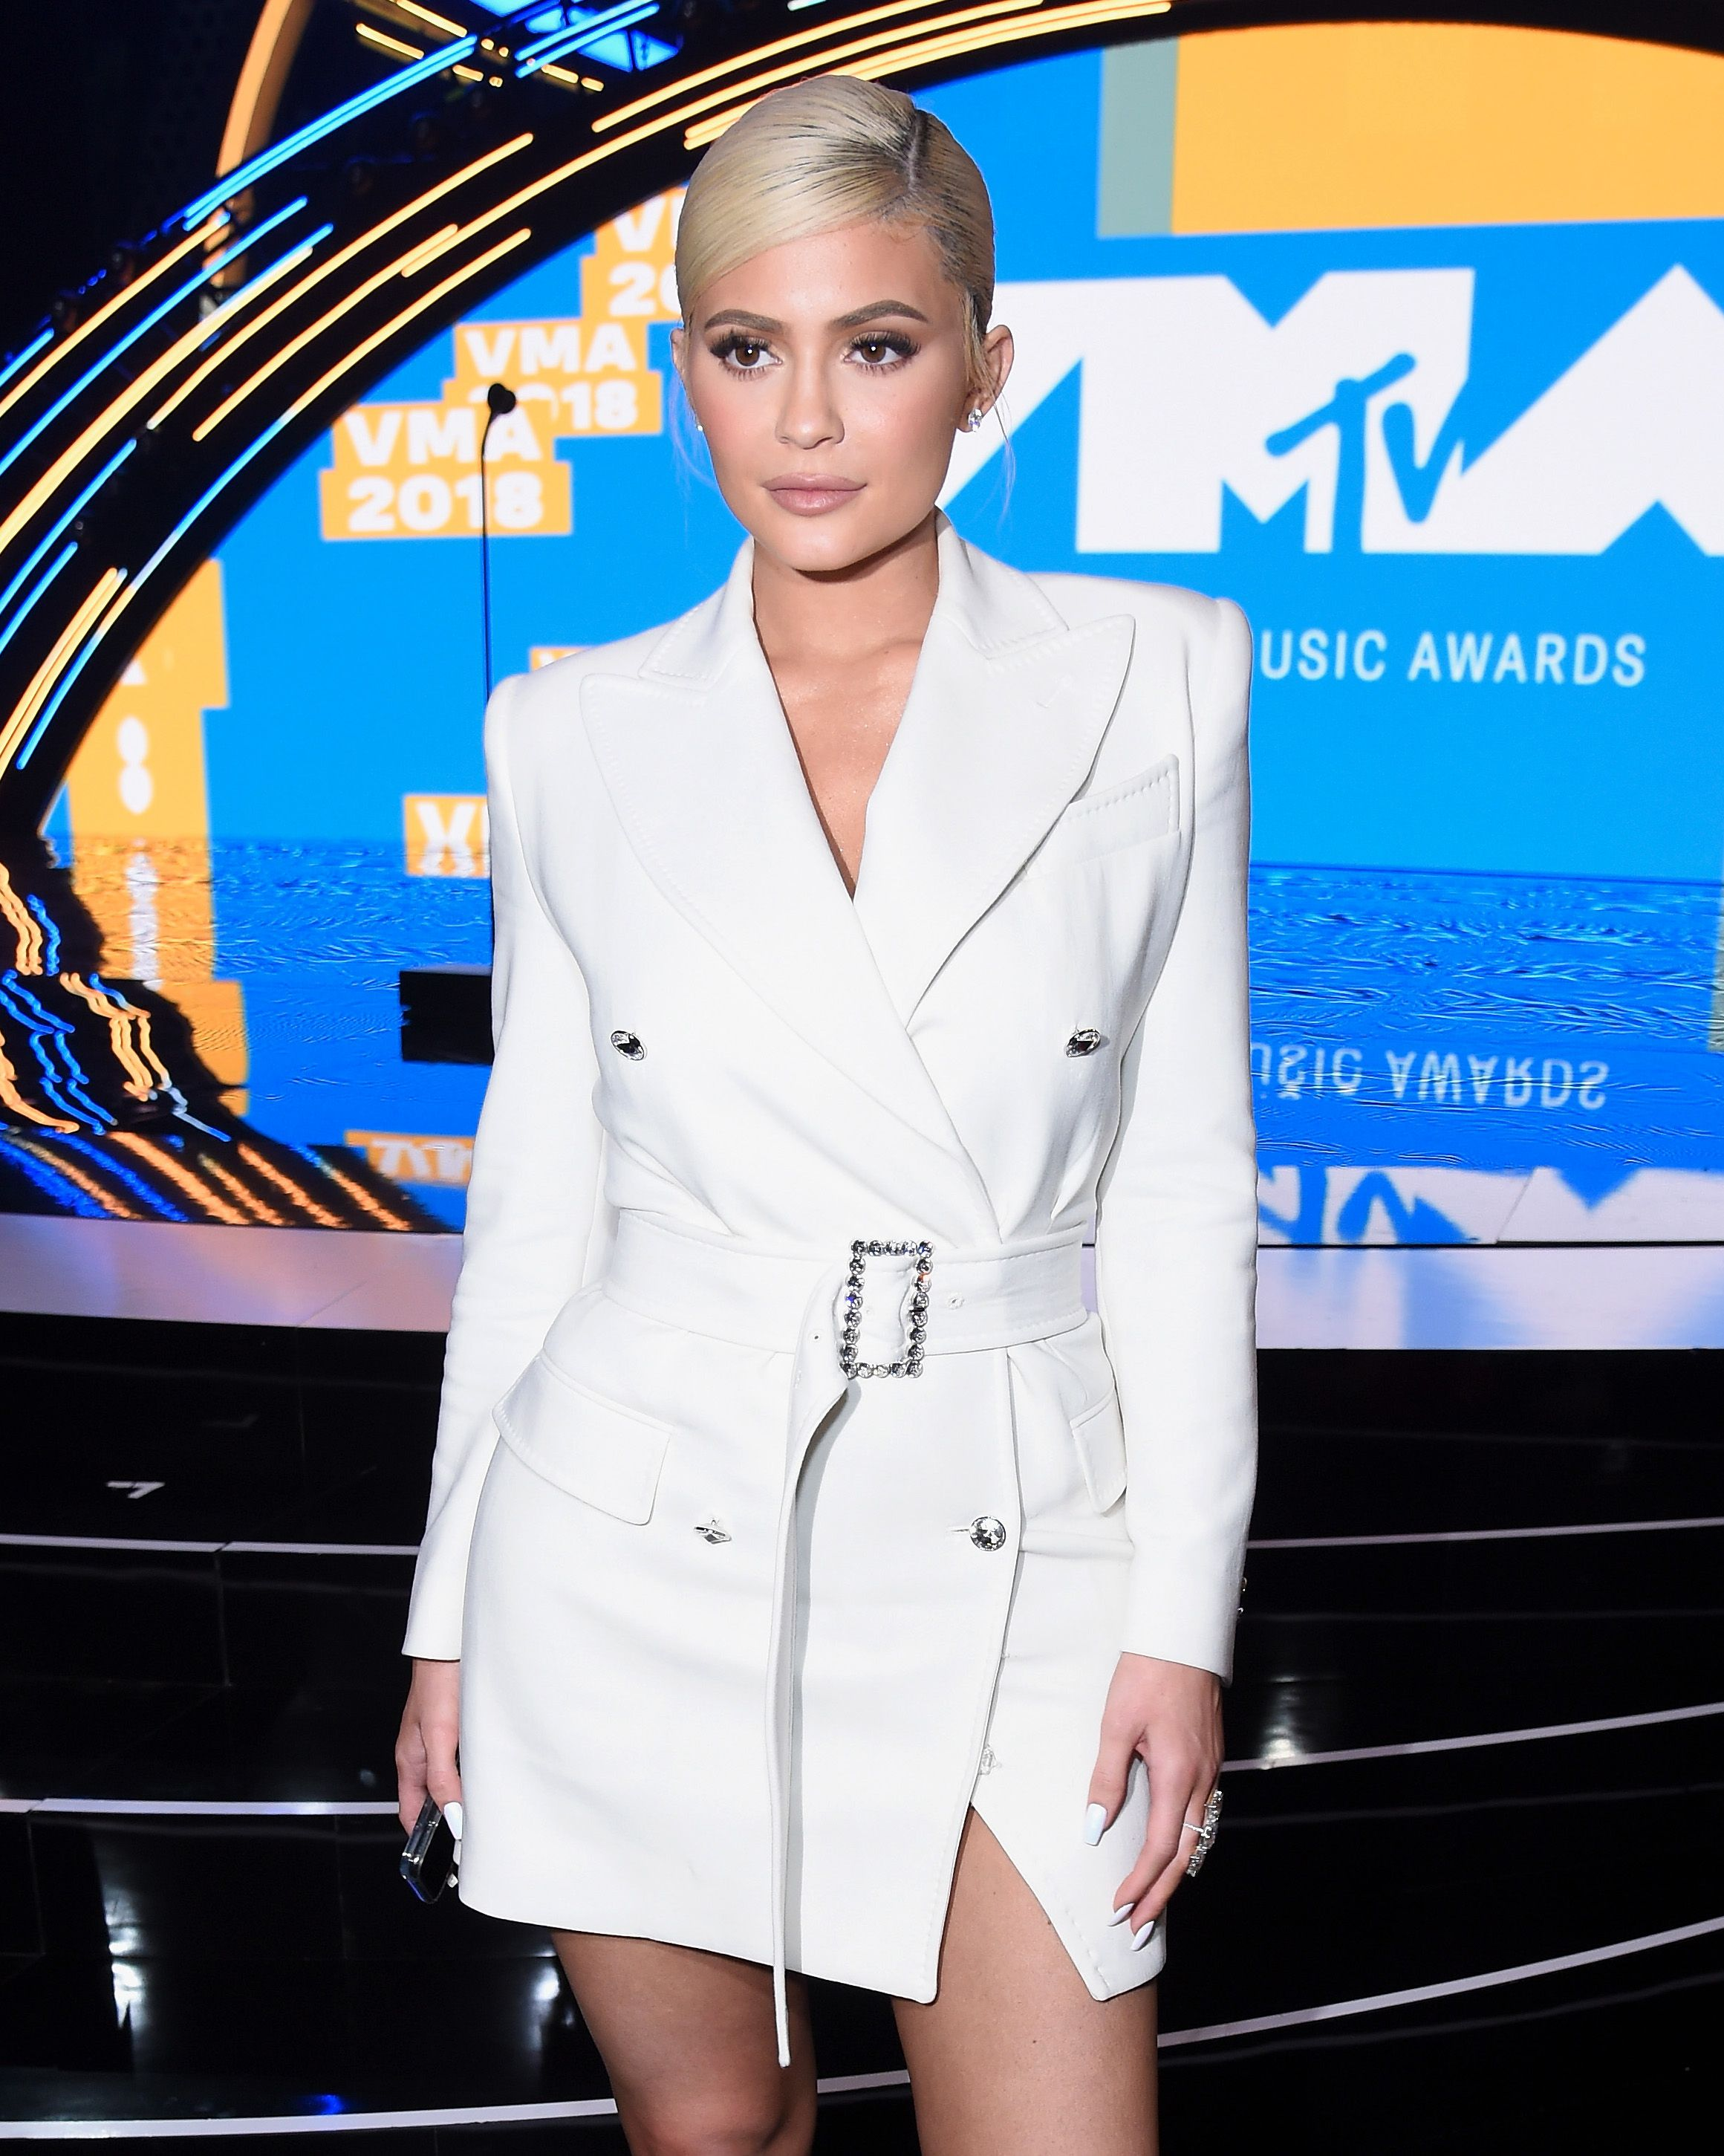 ef14d5a3f69c6 Kylie Jenner wore an ivory TOM FORD Tailored Double Breasted Mini Dress to  the MTV Video Music Awards in New York City.  TOMFORD  VMAs